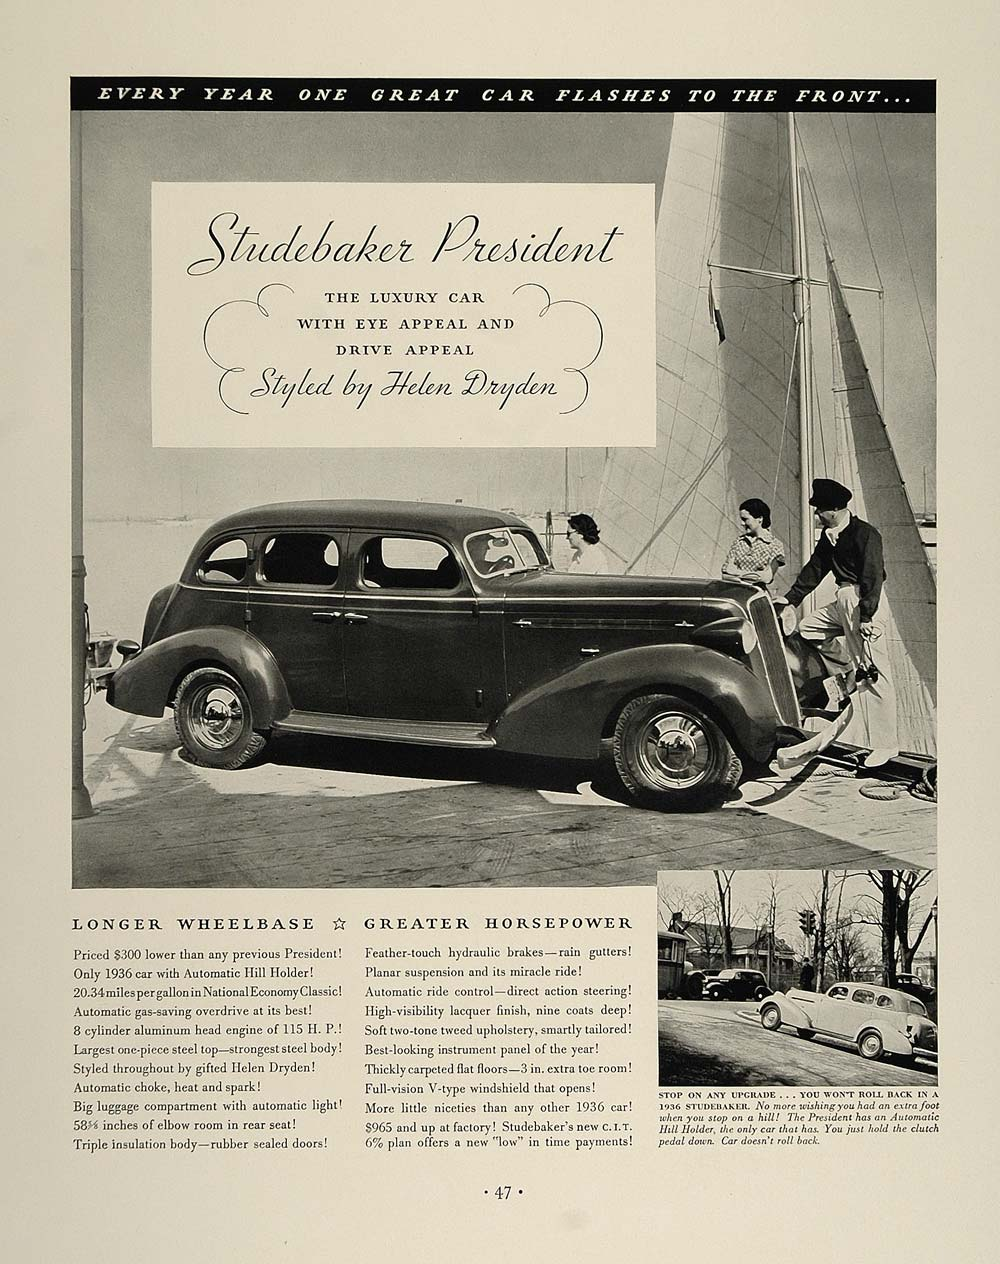 1936 Ad Vintage Studebaker President Car Yacht Sailboat - ORIGINAL FT4